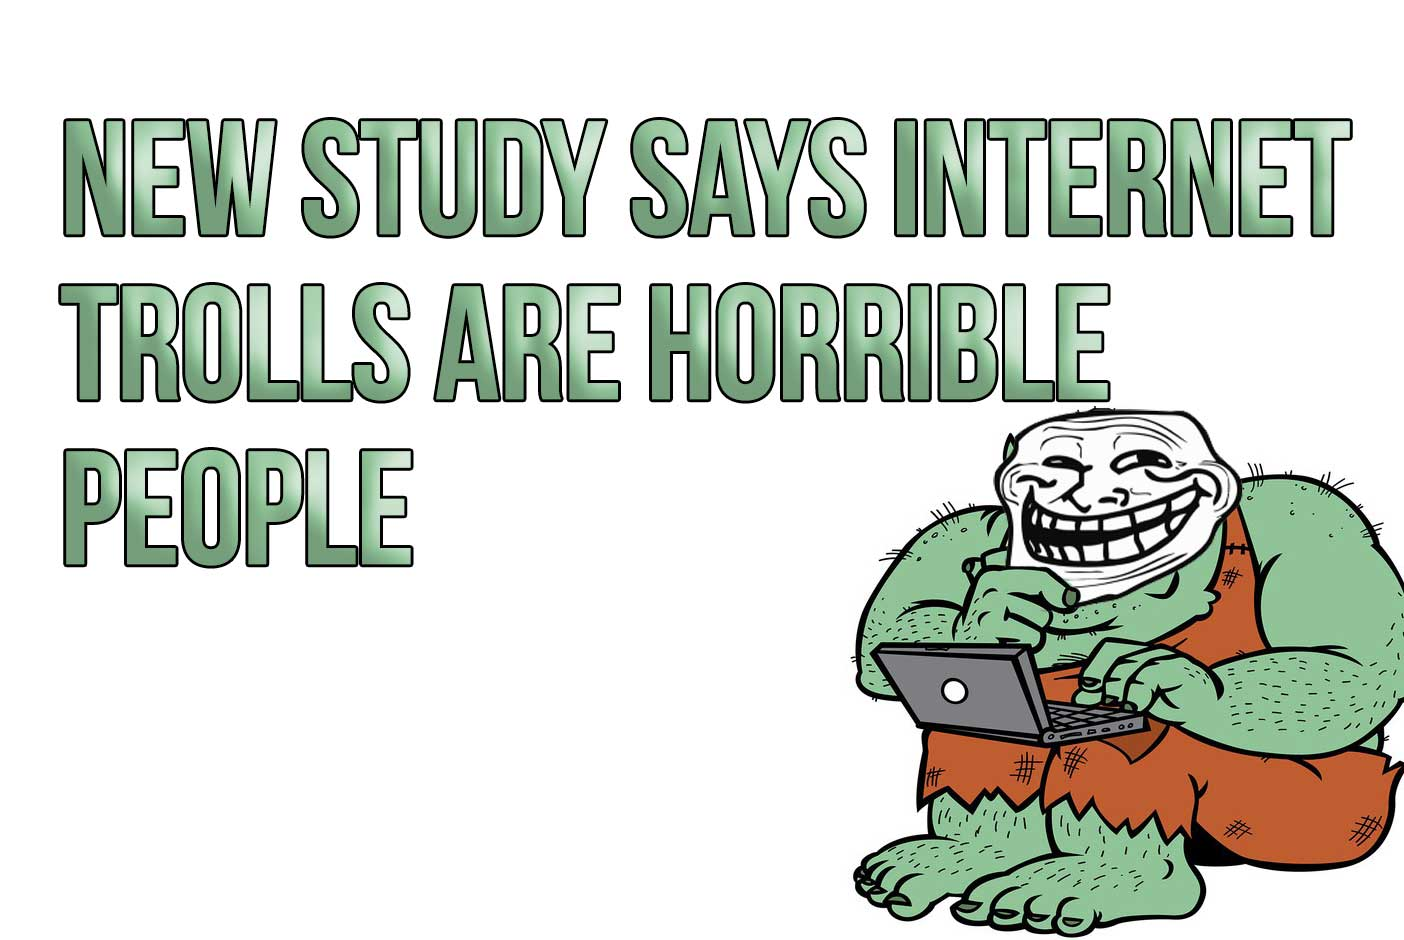 New Study Says Internet Trolls Are Horrible People